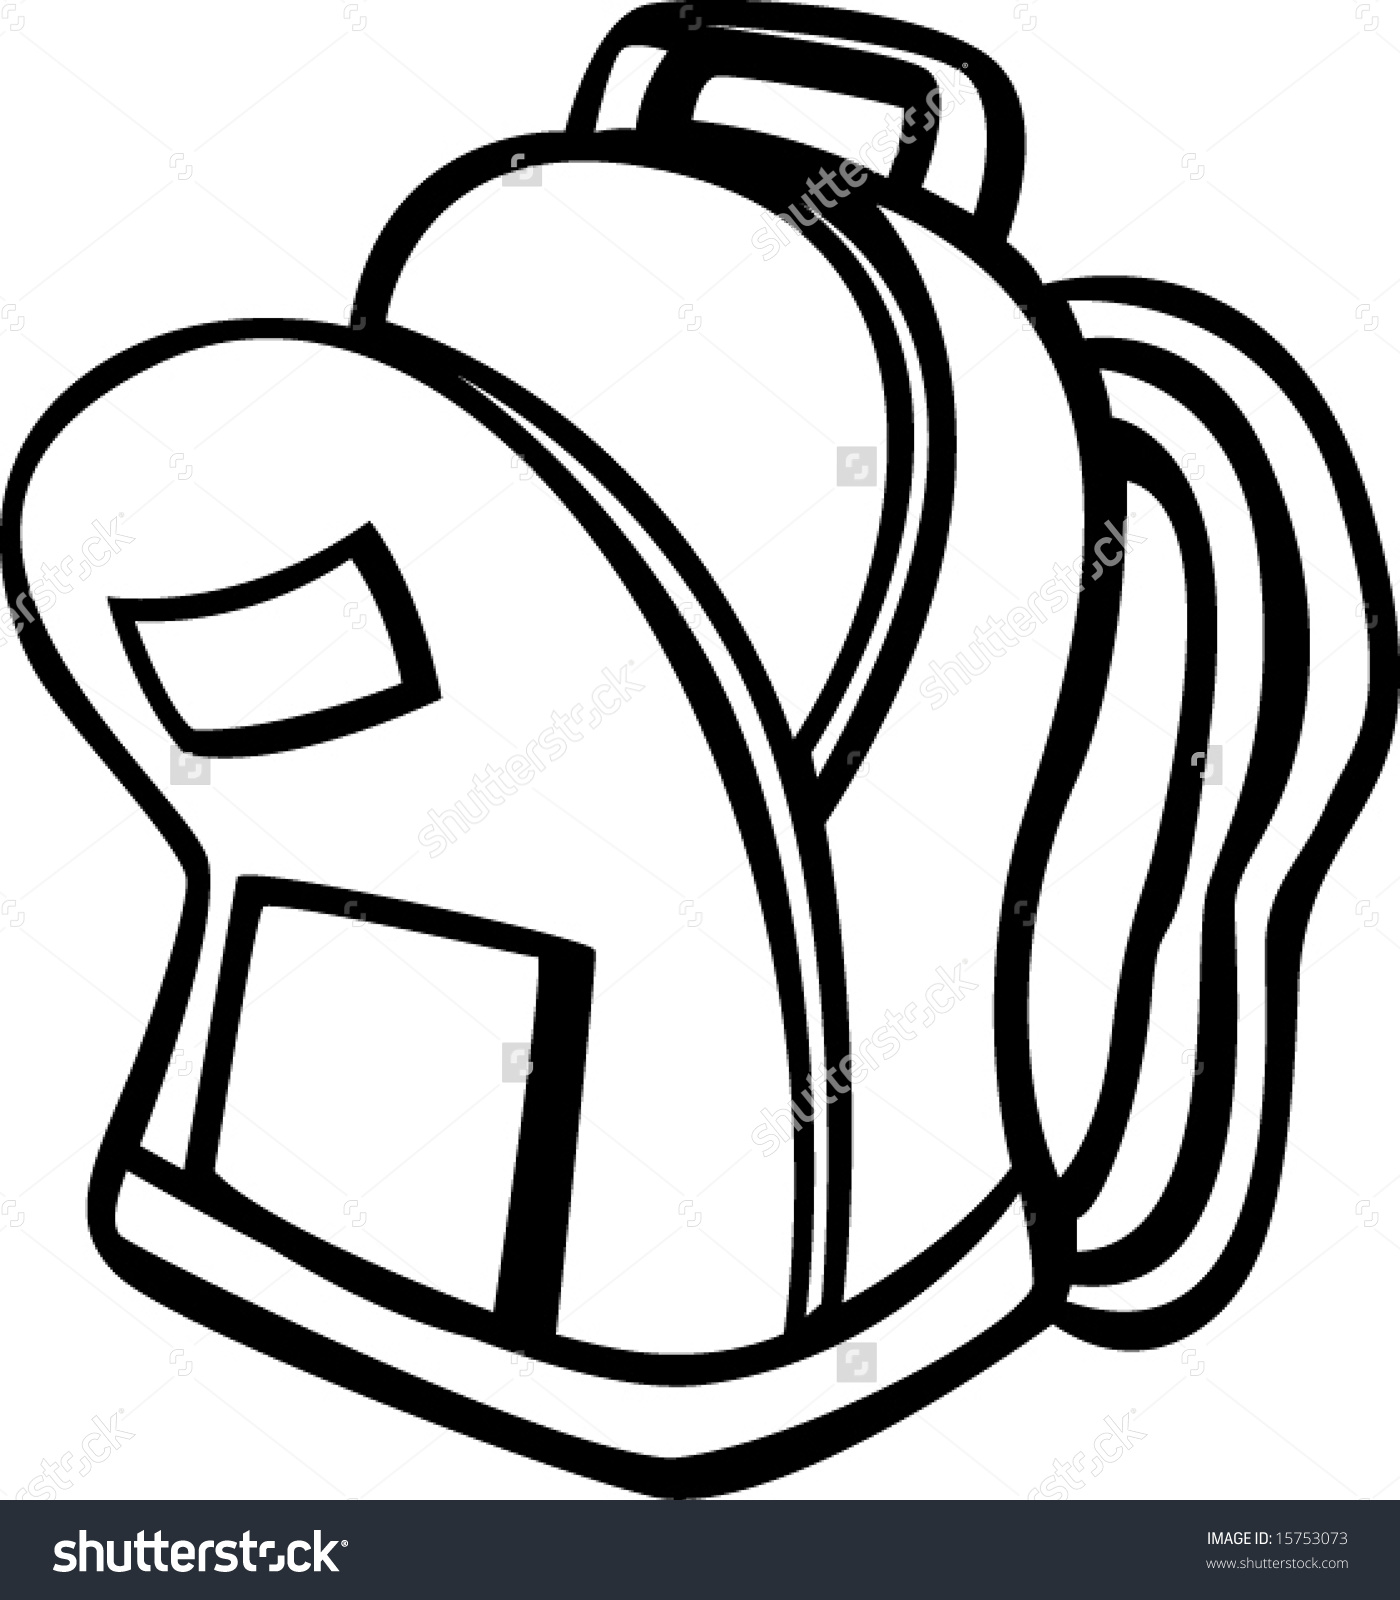 hight resolution of open backpack clipart 5